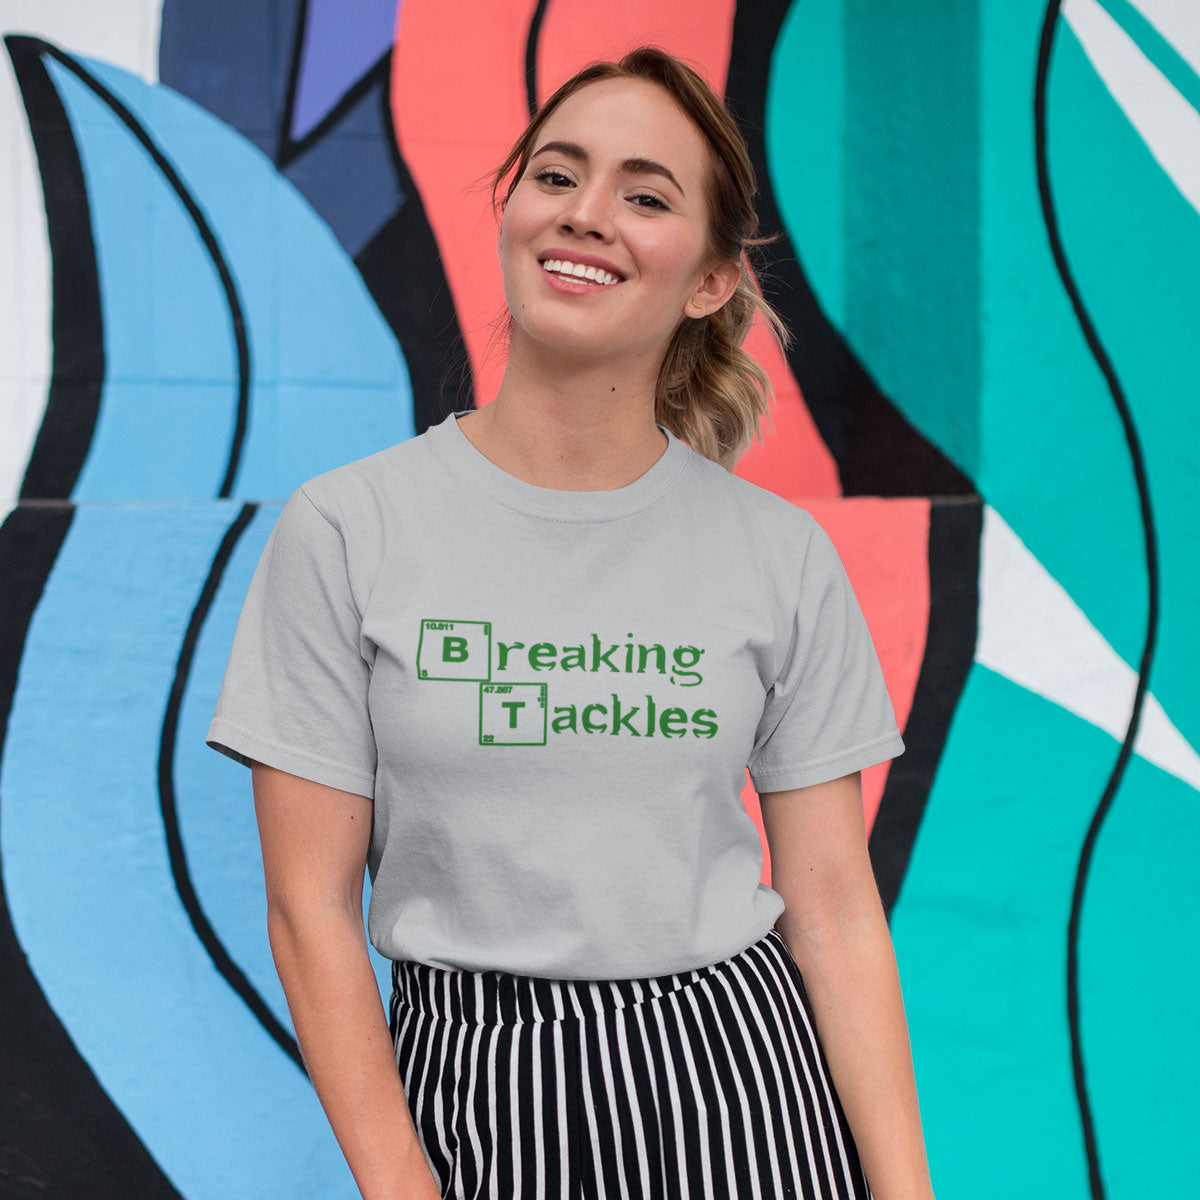 Women's Breaking Tackles Rugby Tee